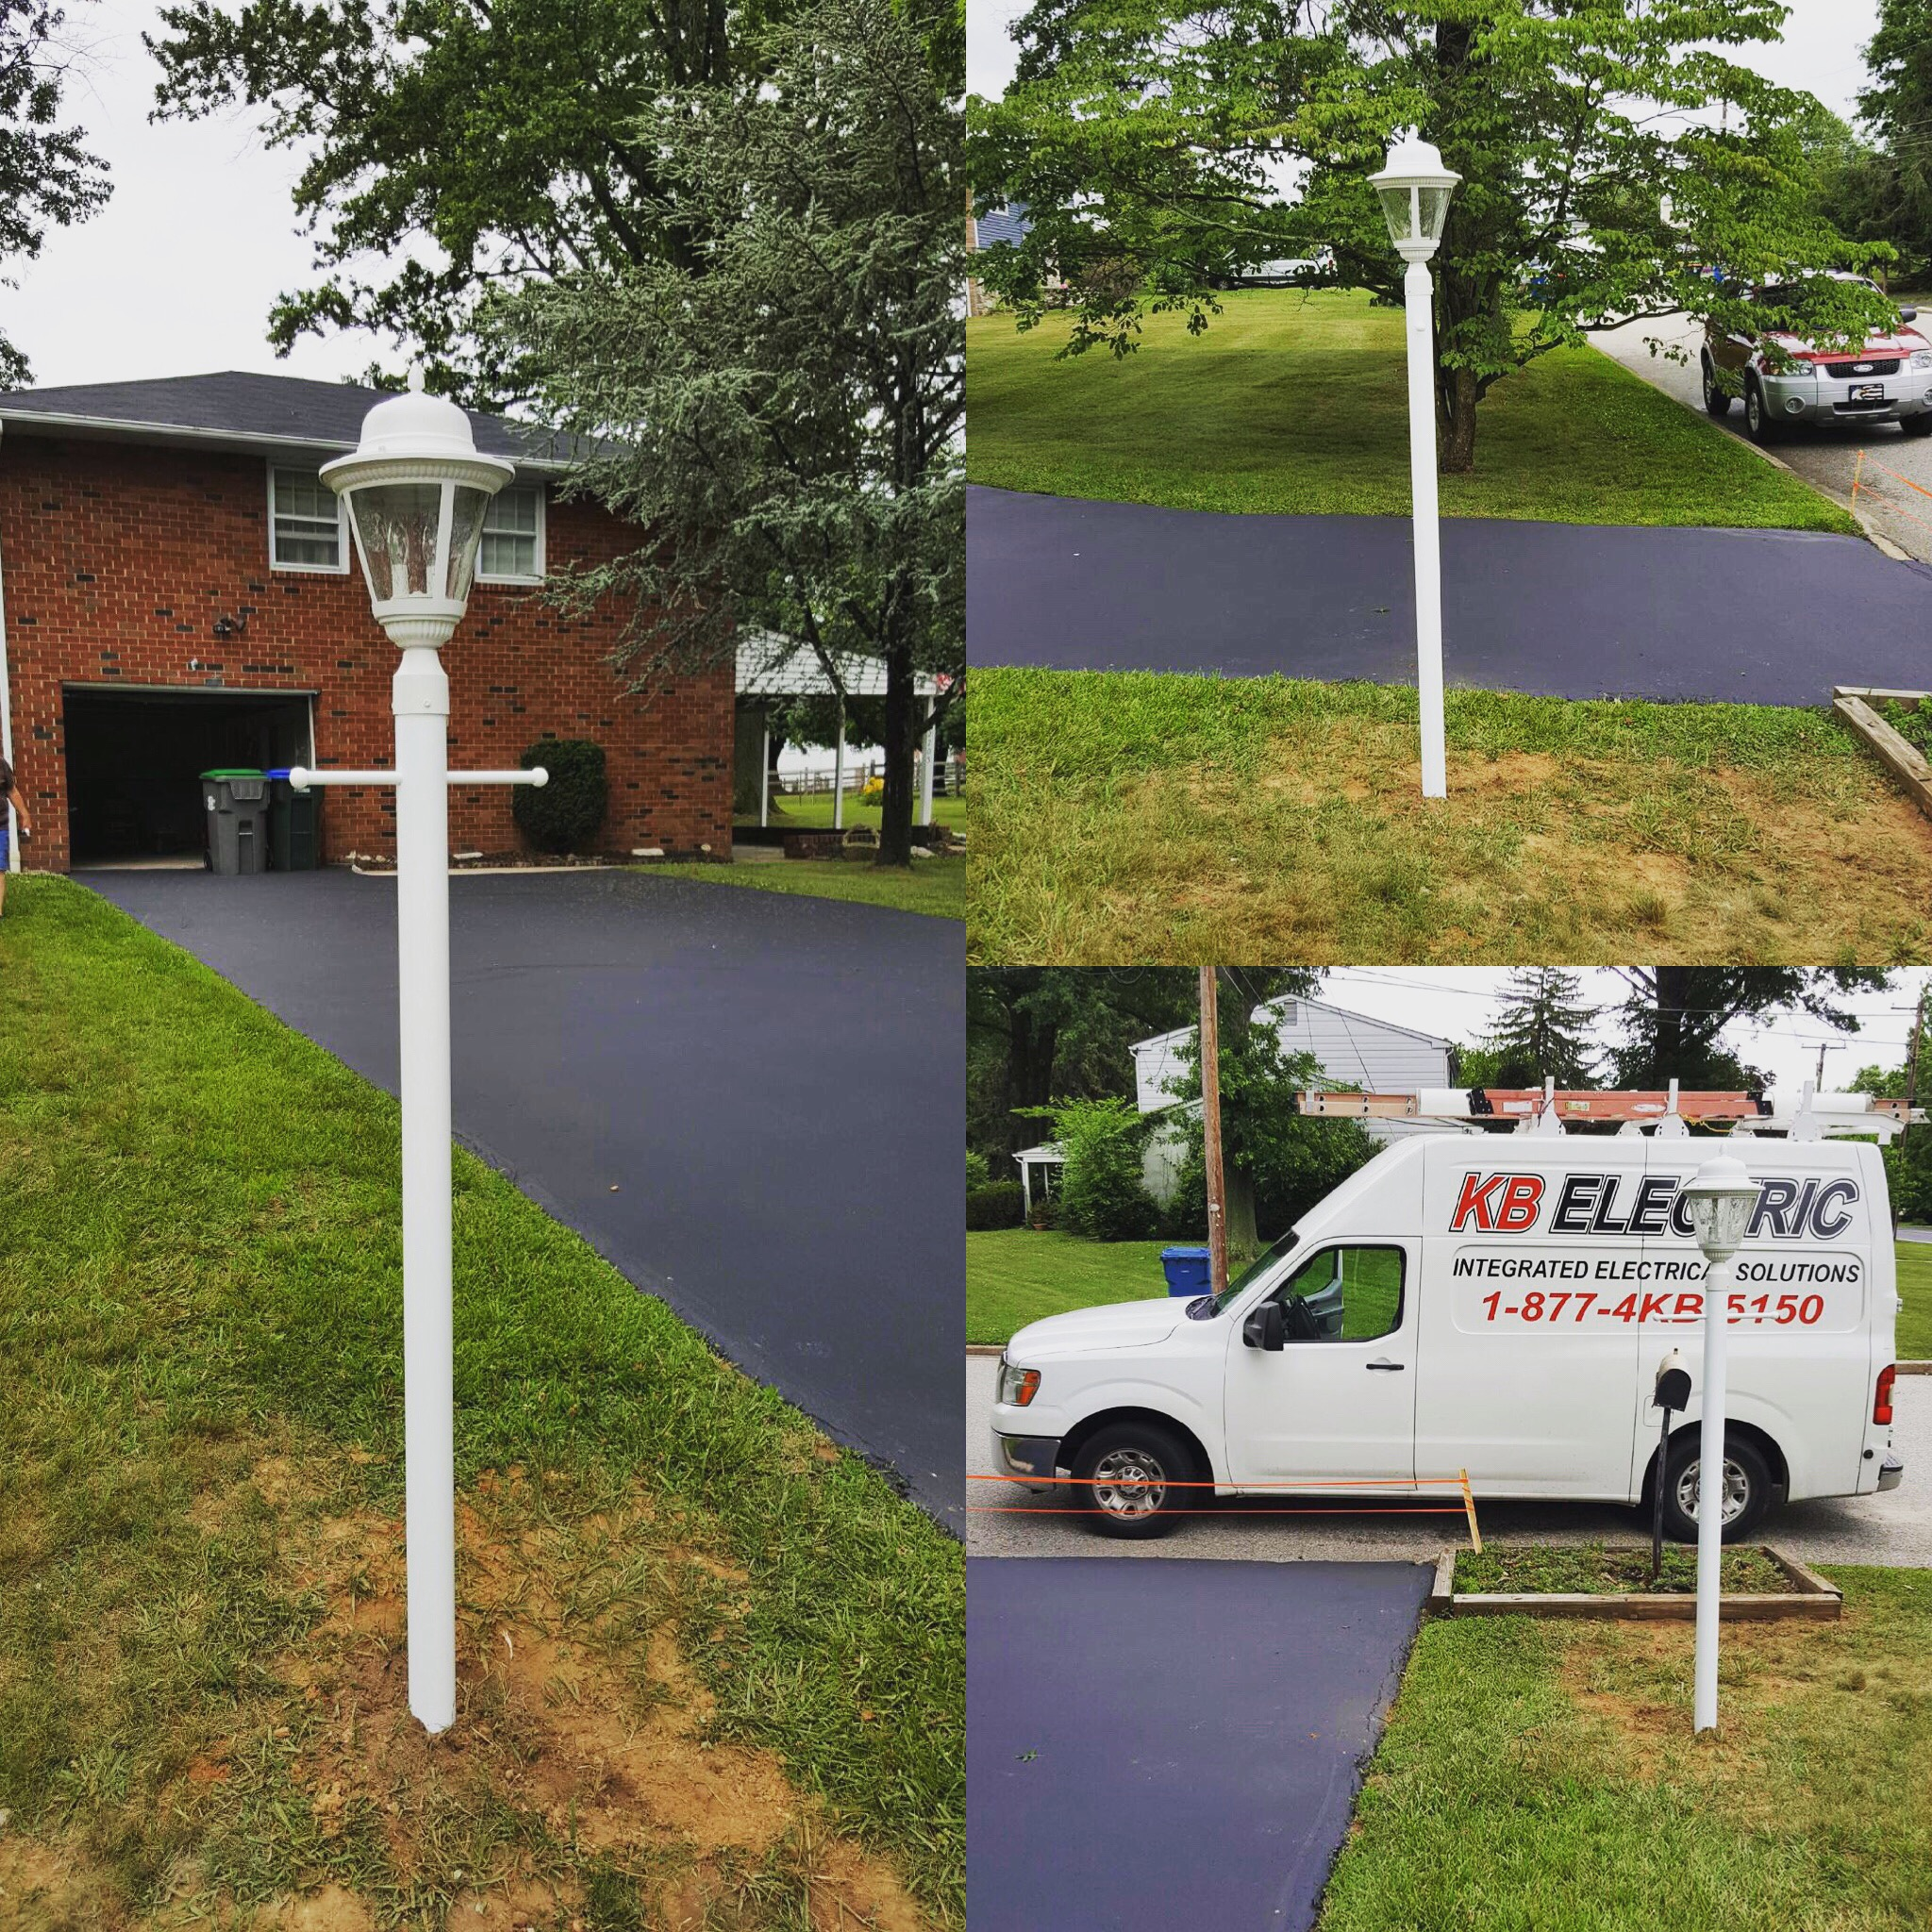 Outdoor Electric Lamp Post: Outdoor Lamp Posts